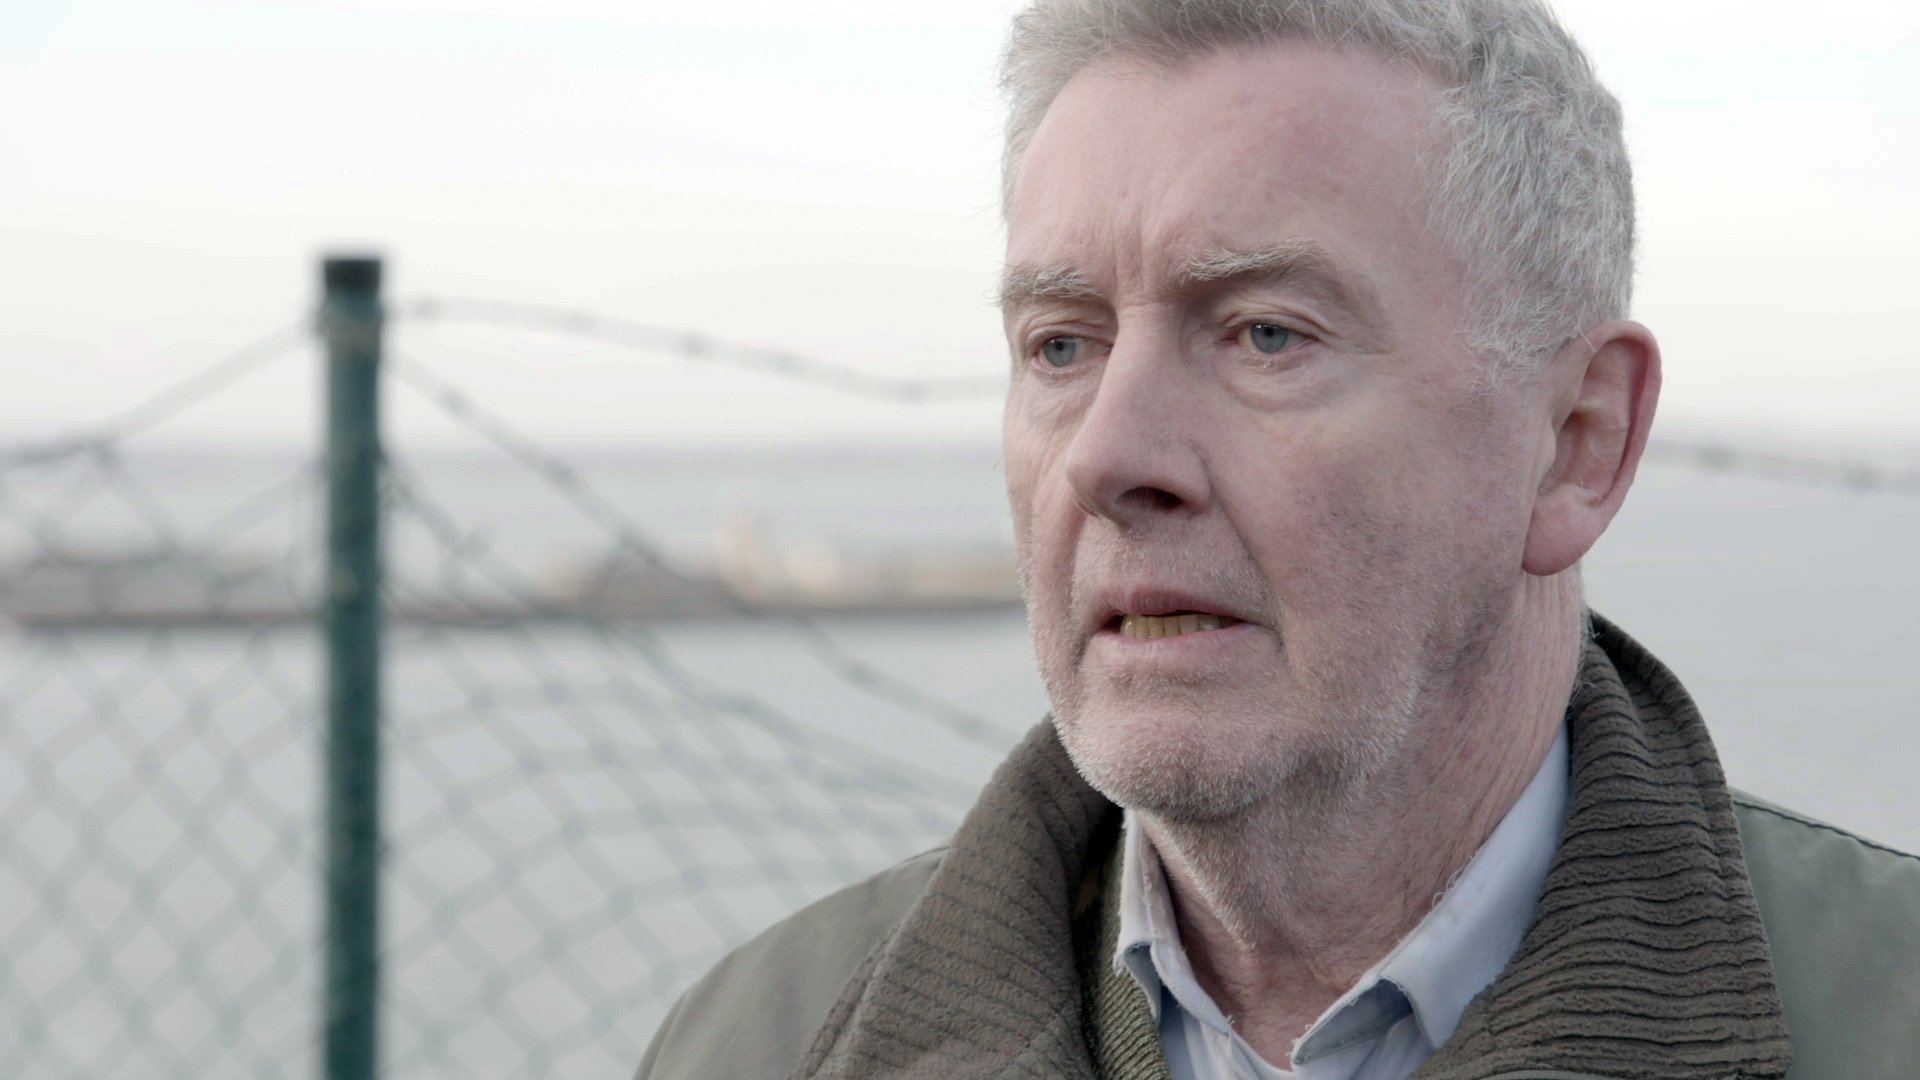 Former Fair City actor Frank Melia guest stars in this week's 'Red Rock'.